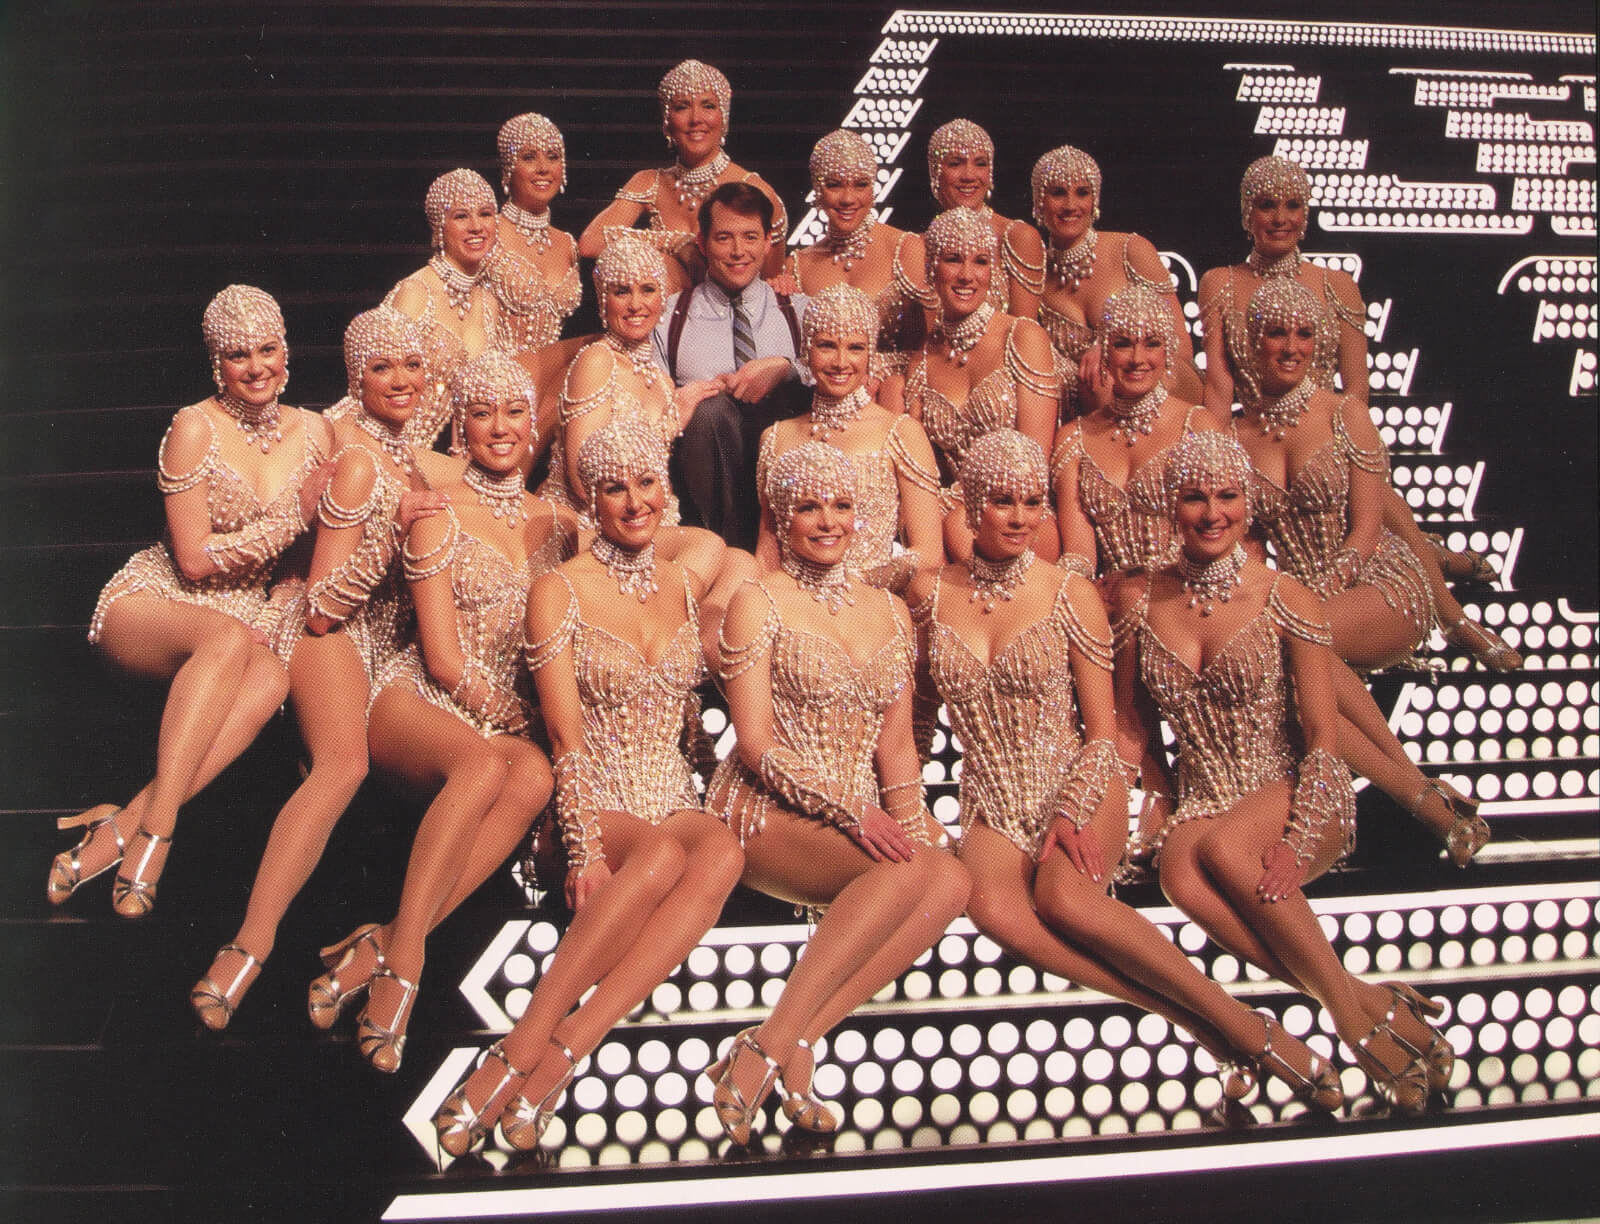 Leo Bloom (Matthew Broderick) and The Pearl Girls. Matthew is surrounded by beautiful woman dressed in pearl costumes.